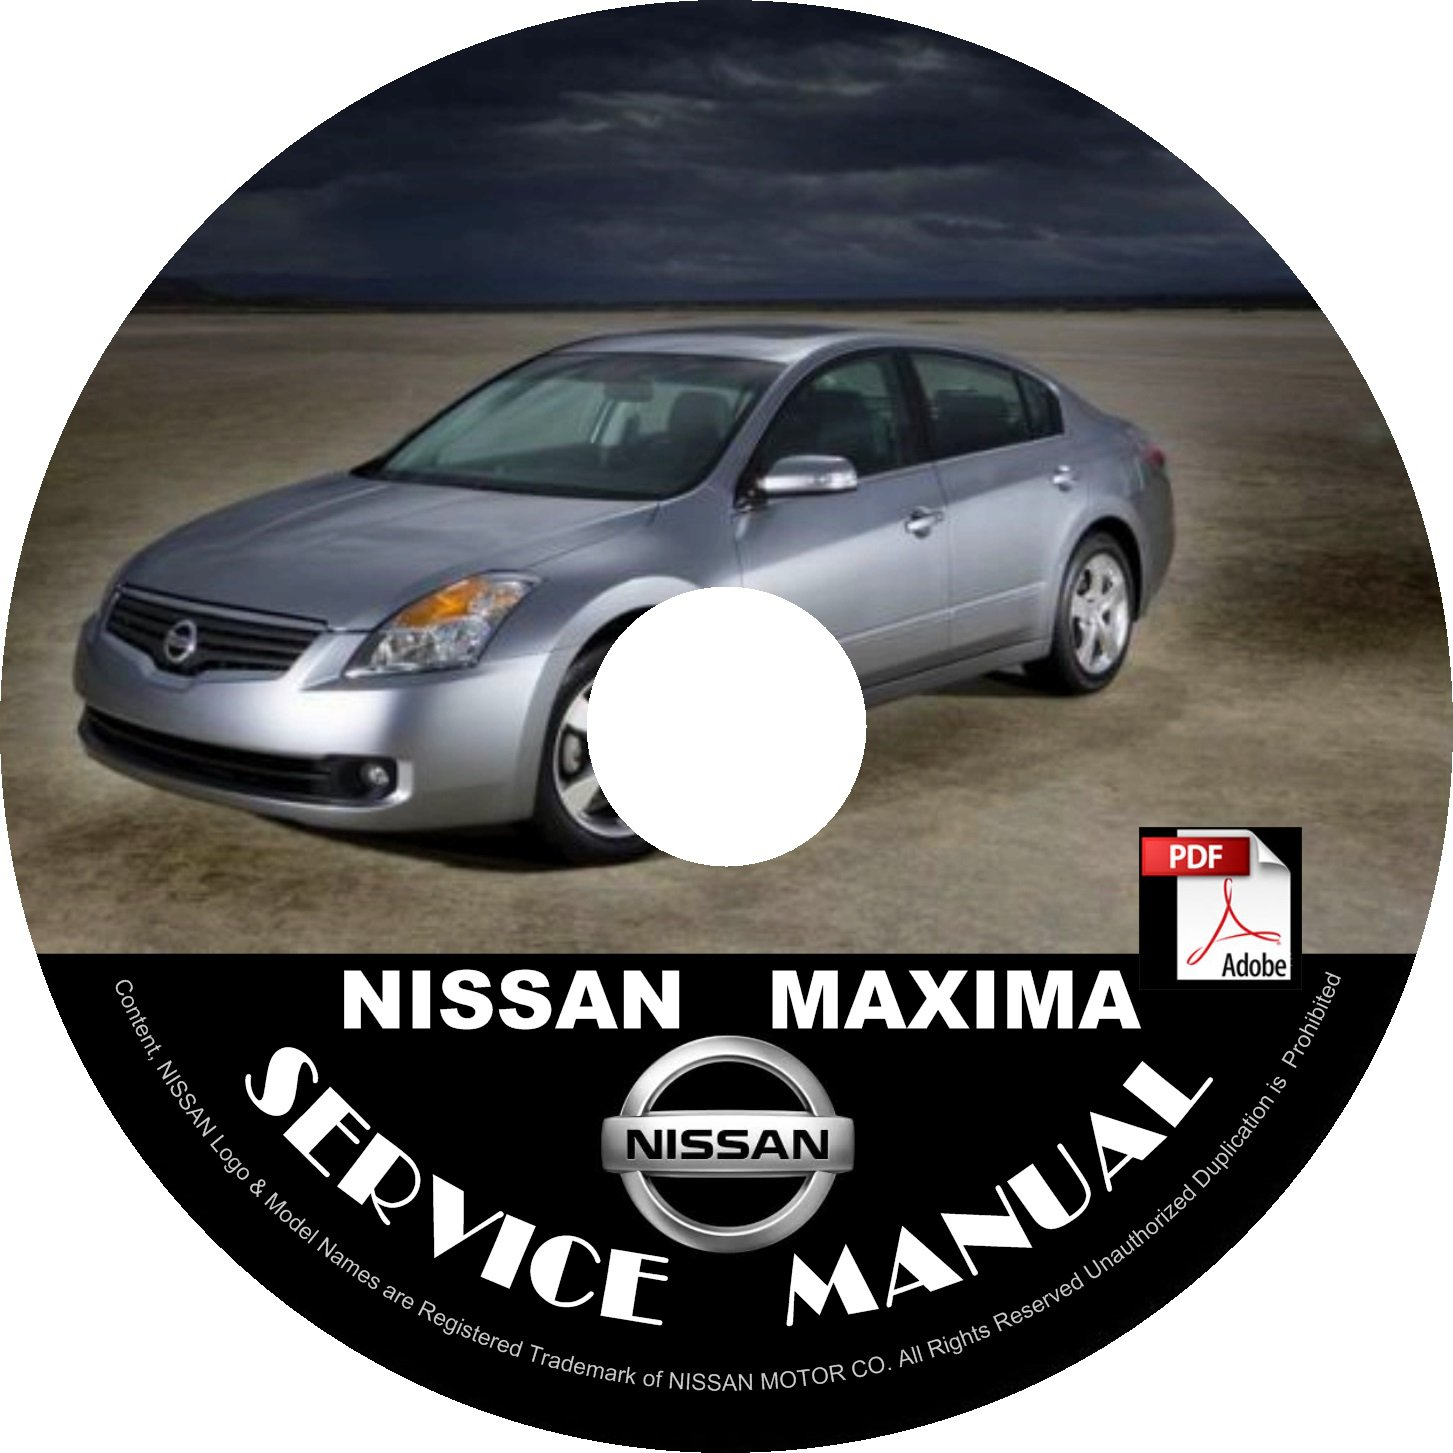 2008 Nissan Maxima Service Repair Shop Manual on CD Fix Repair Rebuild 08 Workshop Guide